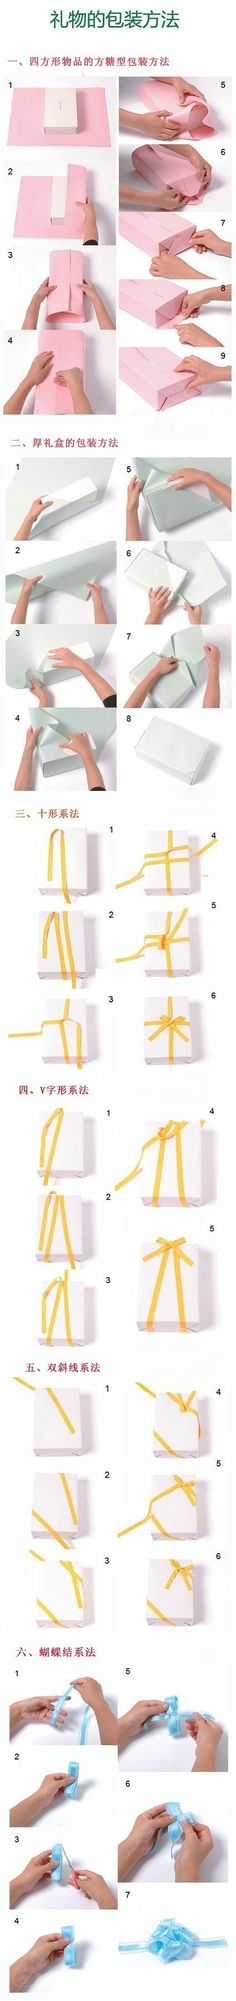 Gift Wrapping - Photo Tutorial ❥ 4U hilariafina http://www.pinterest.com/hilariafina/